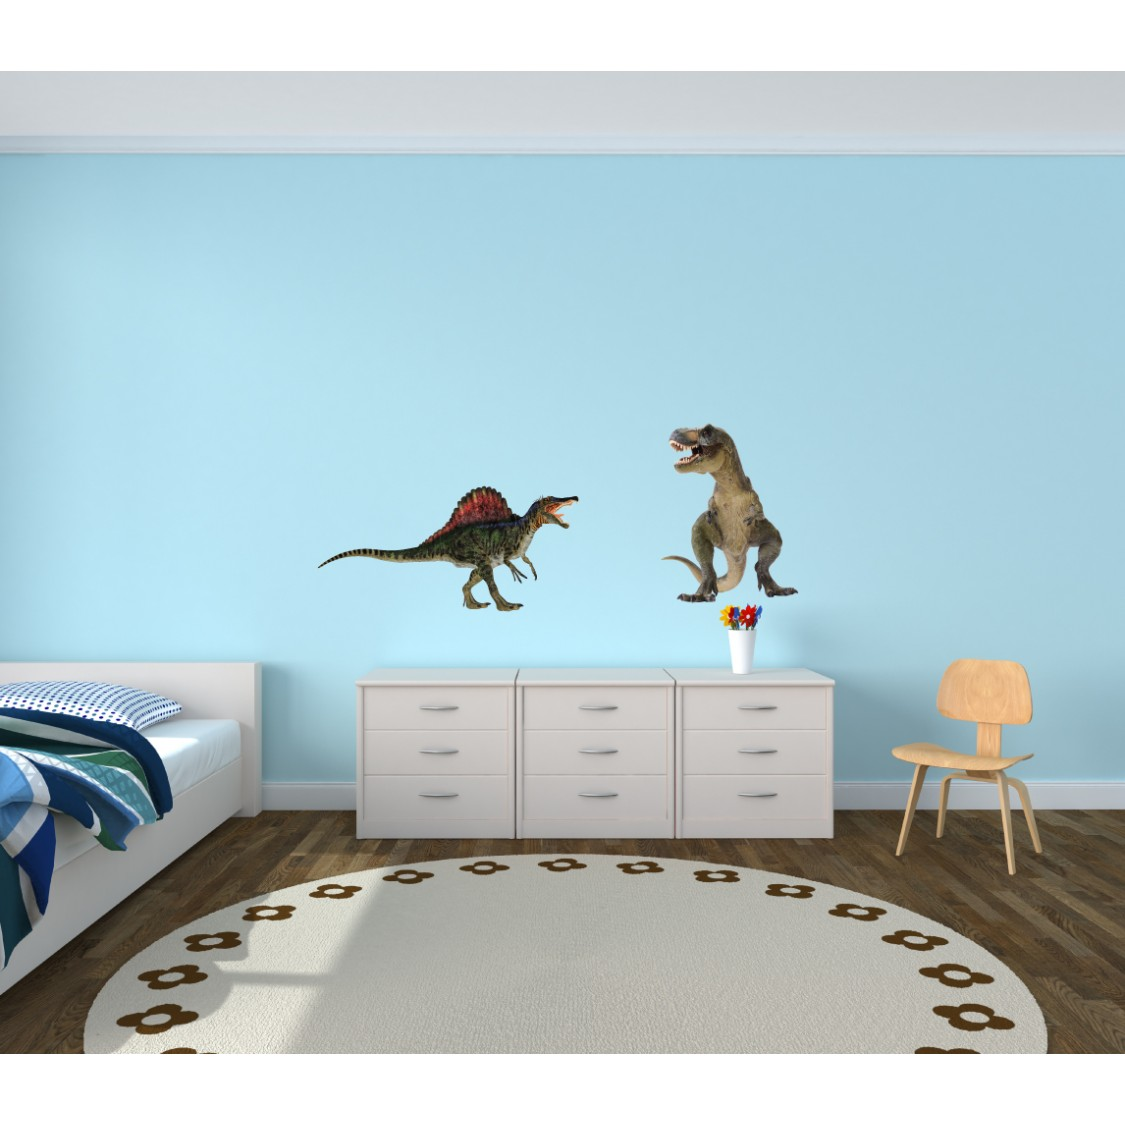 Childrens Bedroom Wall Stickers & Dinosaur Wall Decor For Kids Rooms